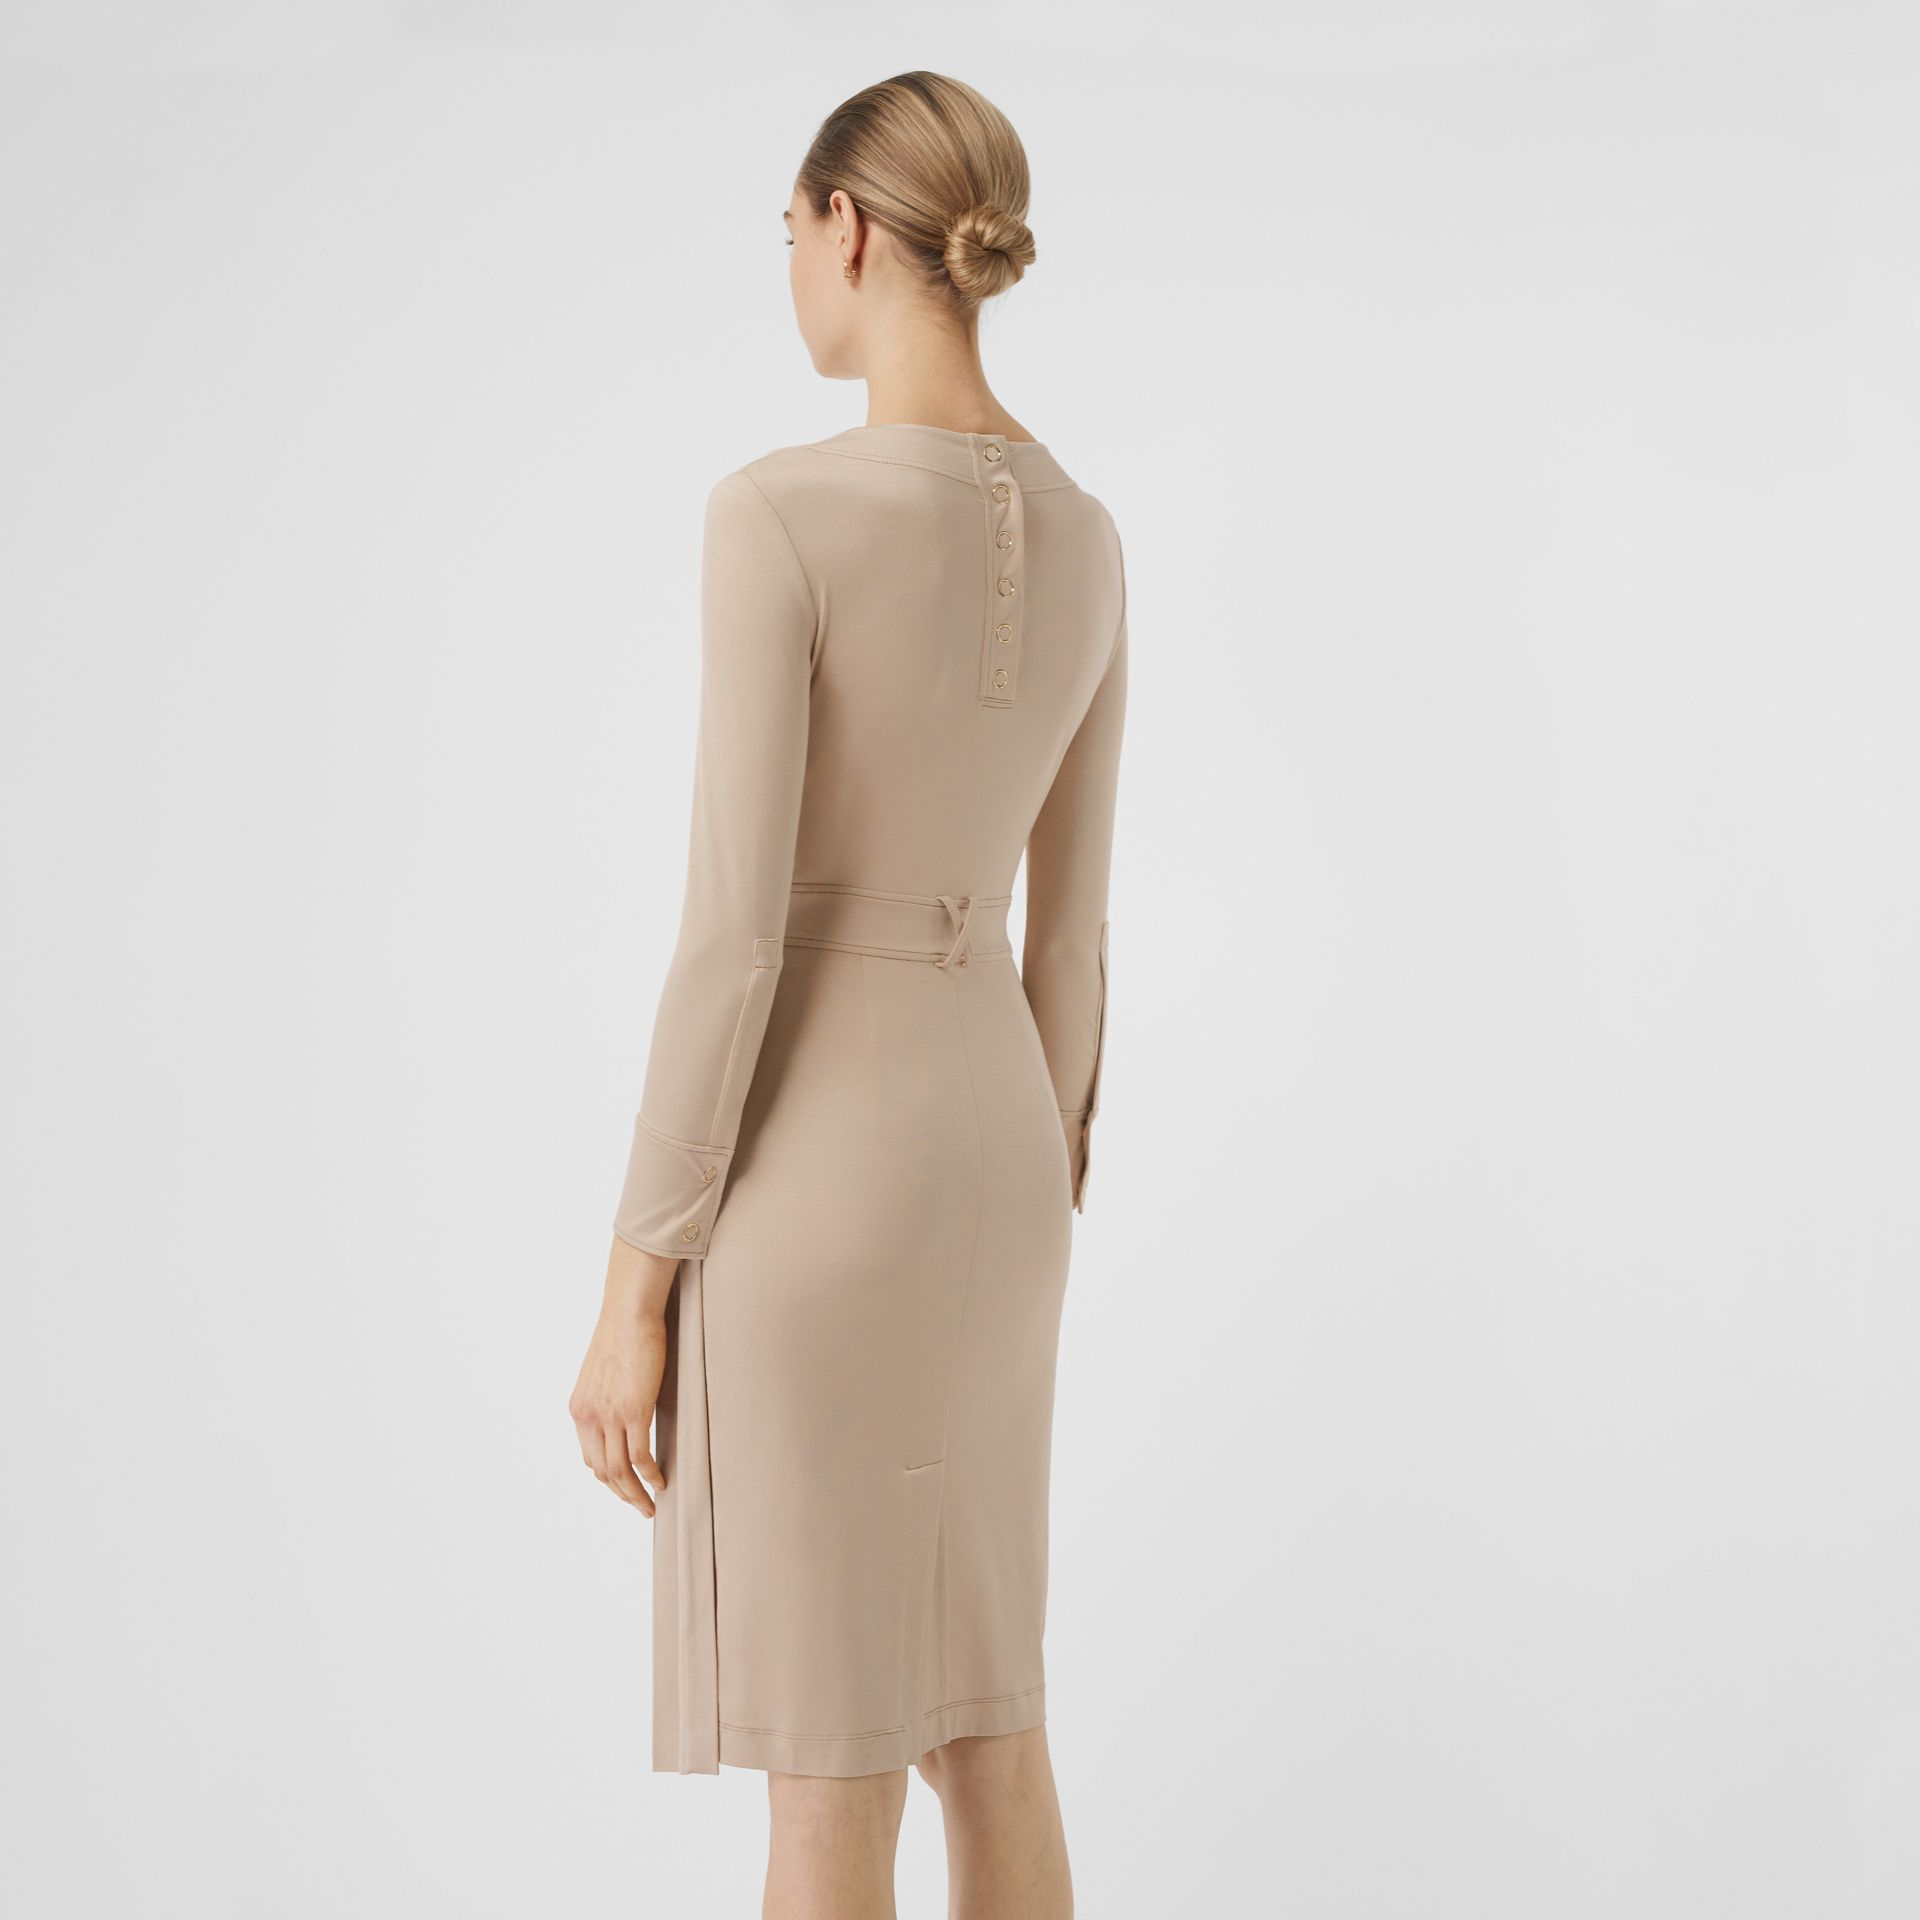 Long-sleeve Pleated Dress in Teddy Beige - Women | Burberry - gallery image 2